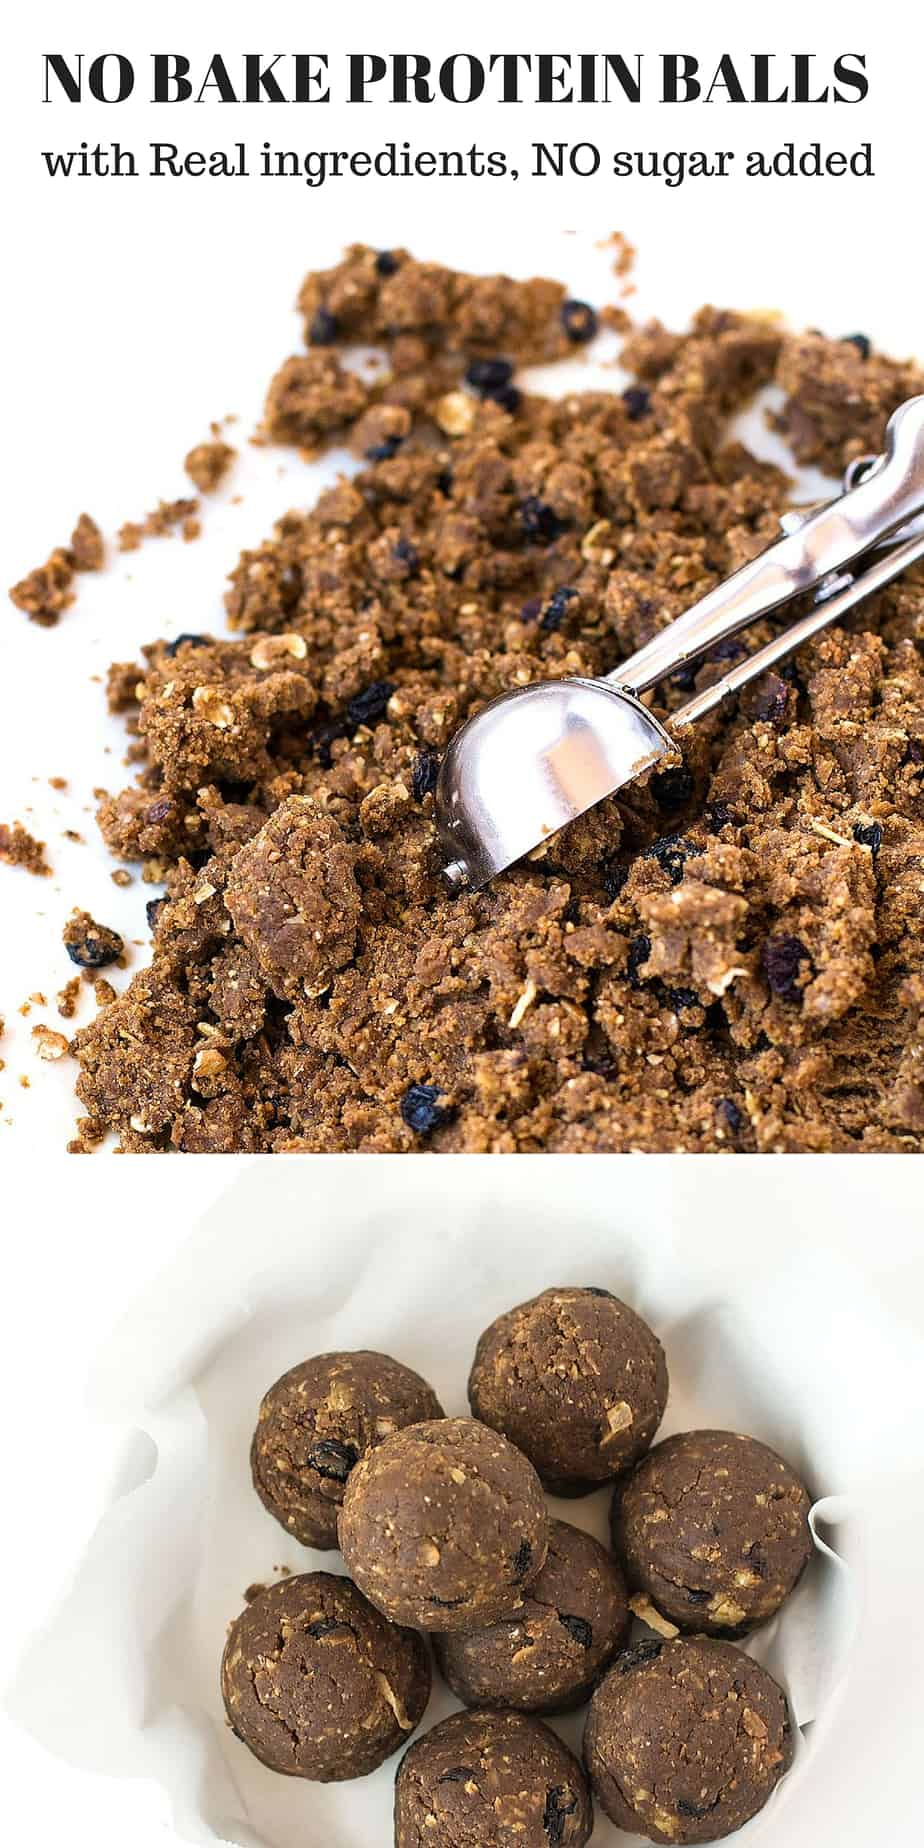 NO BAKE PROTEIN BALLS with Real Ingredients, No Sugar Added. Pre/Post Workout Snack, High Fiber and High Protein Food. Low Carb Diet Friendly Food